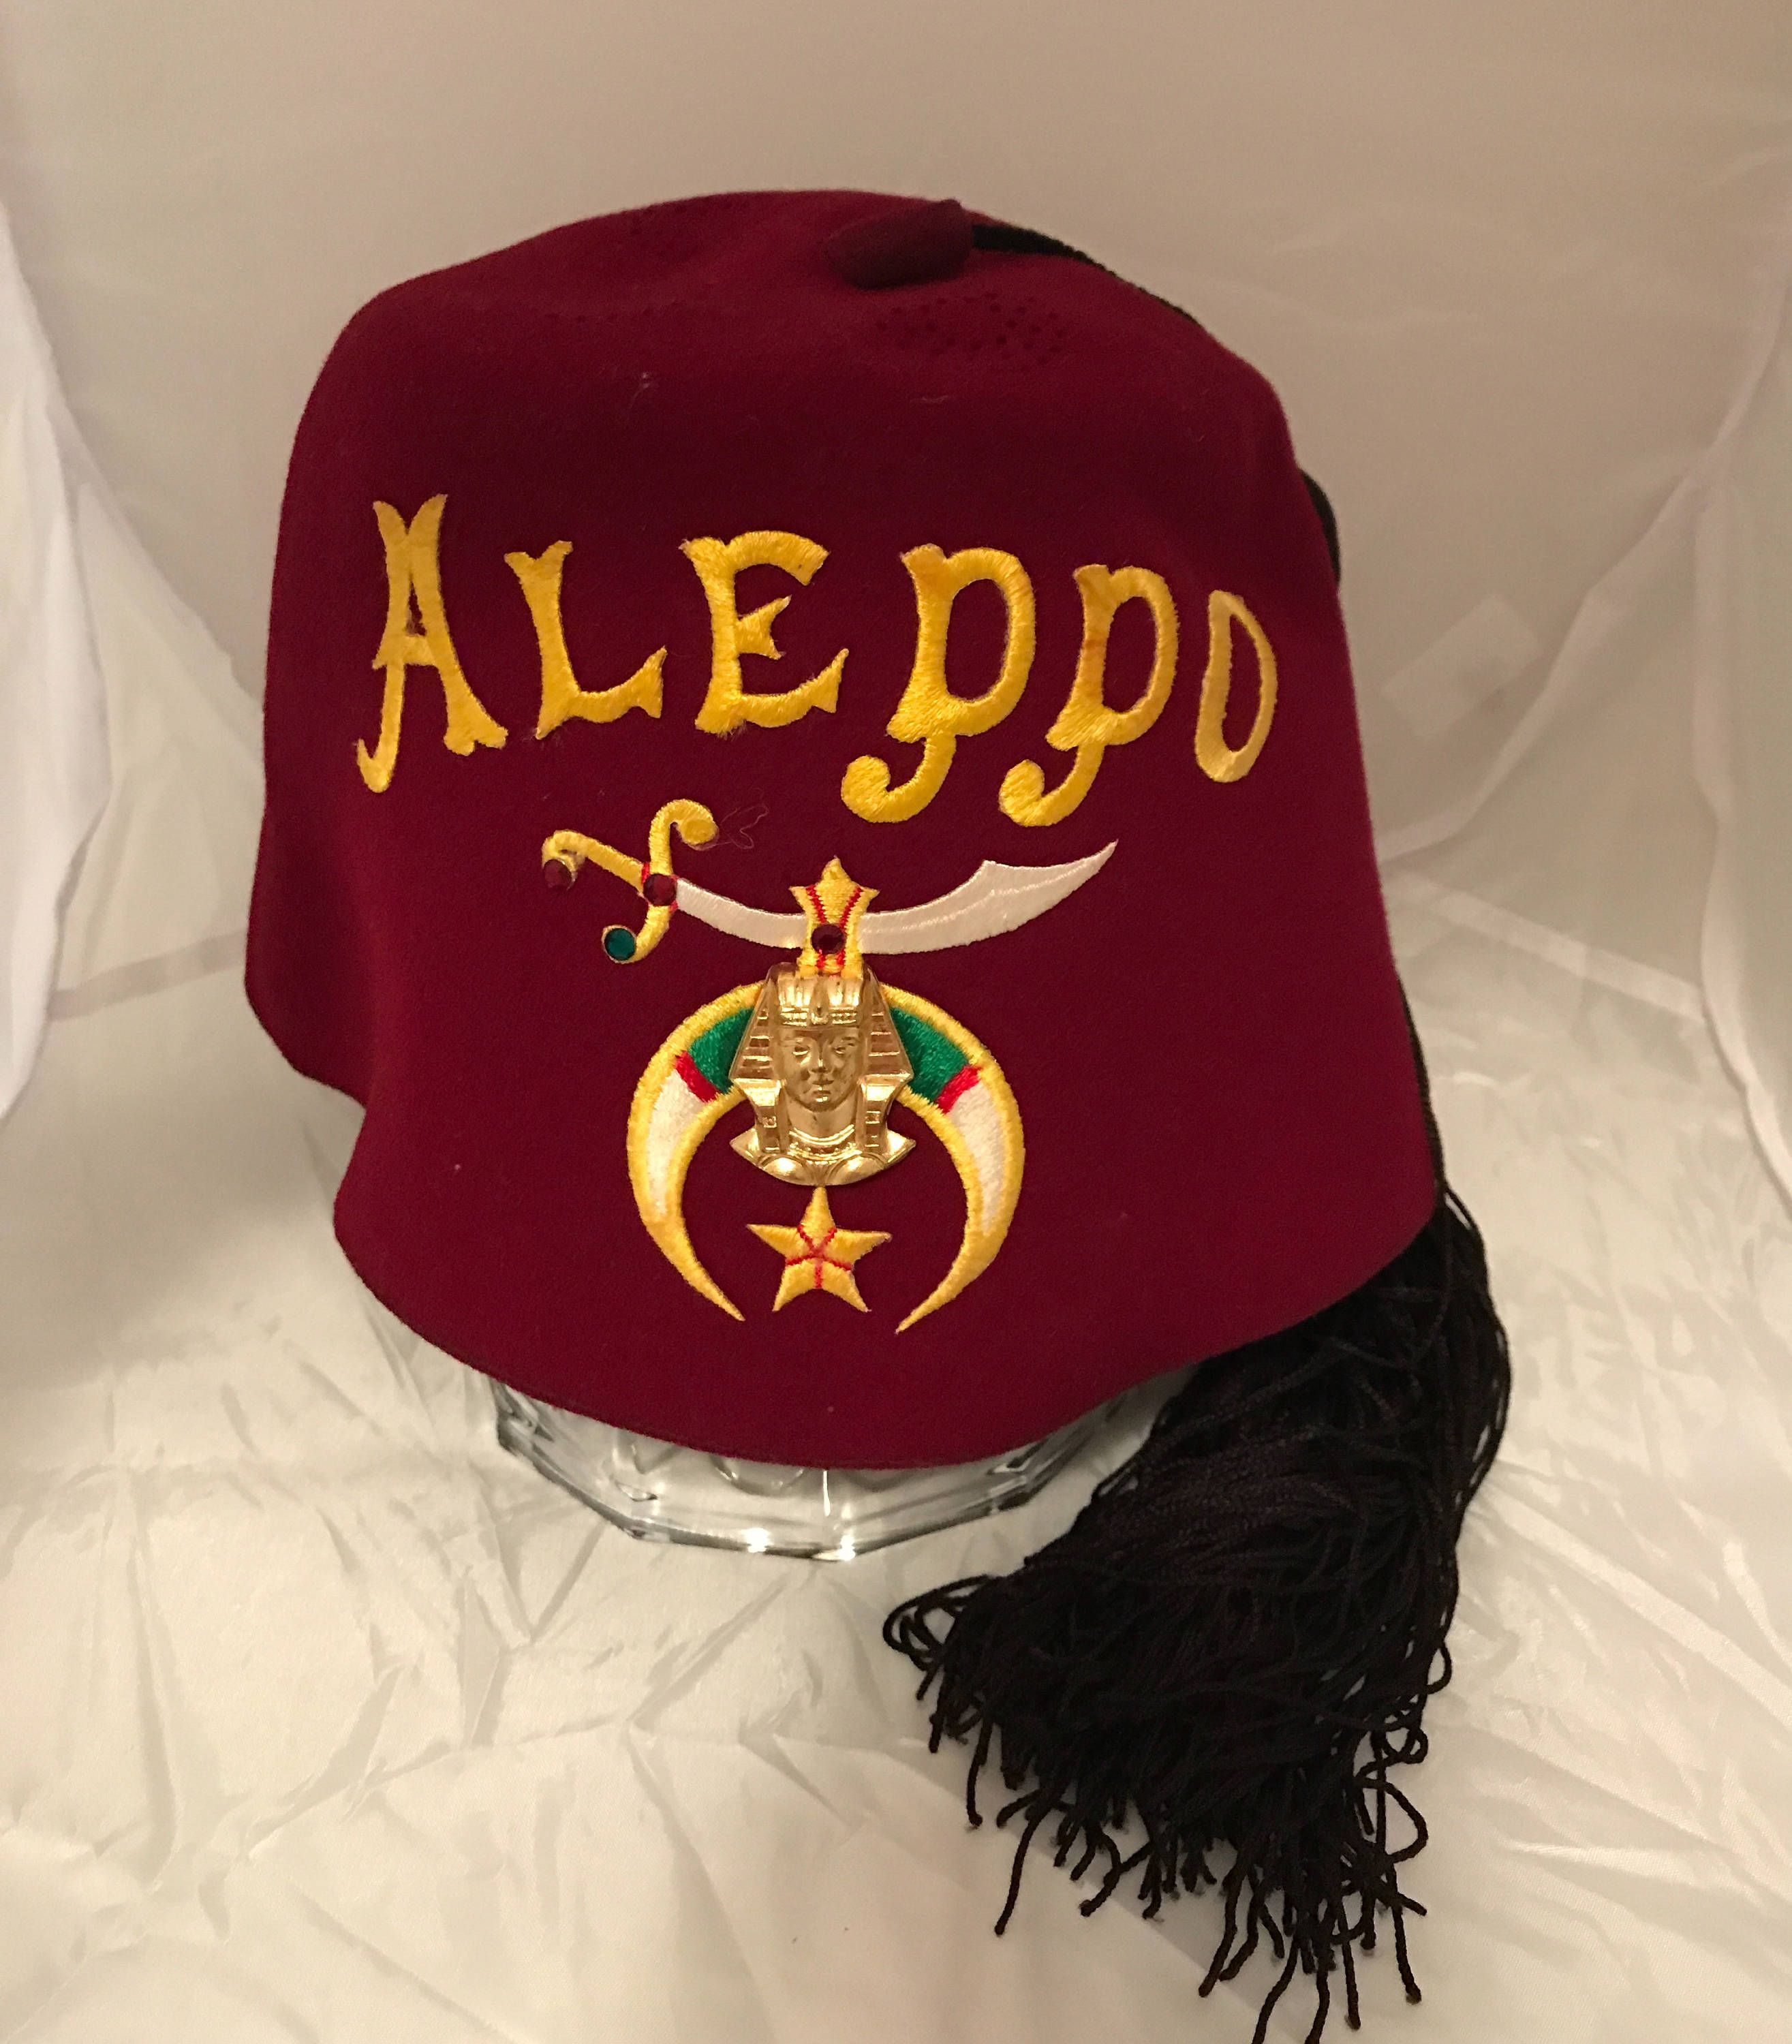 f84067df0 Shriners Fez Aleppo Masonic Red Embroidered Hat, Vintage, Pharaoh ...